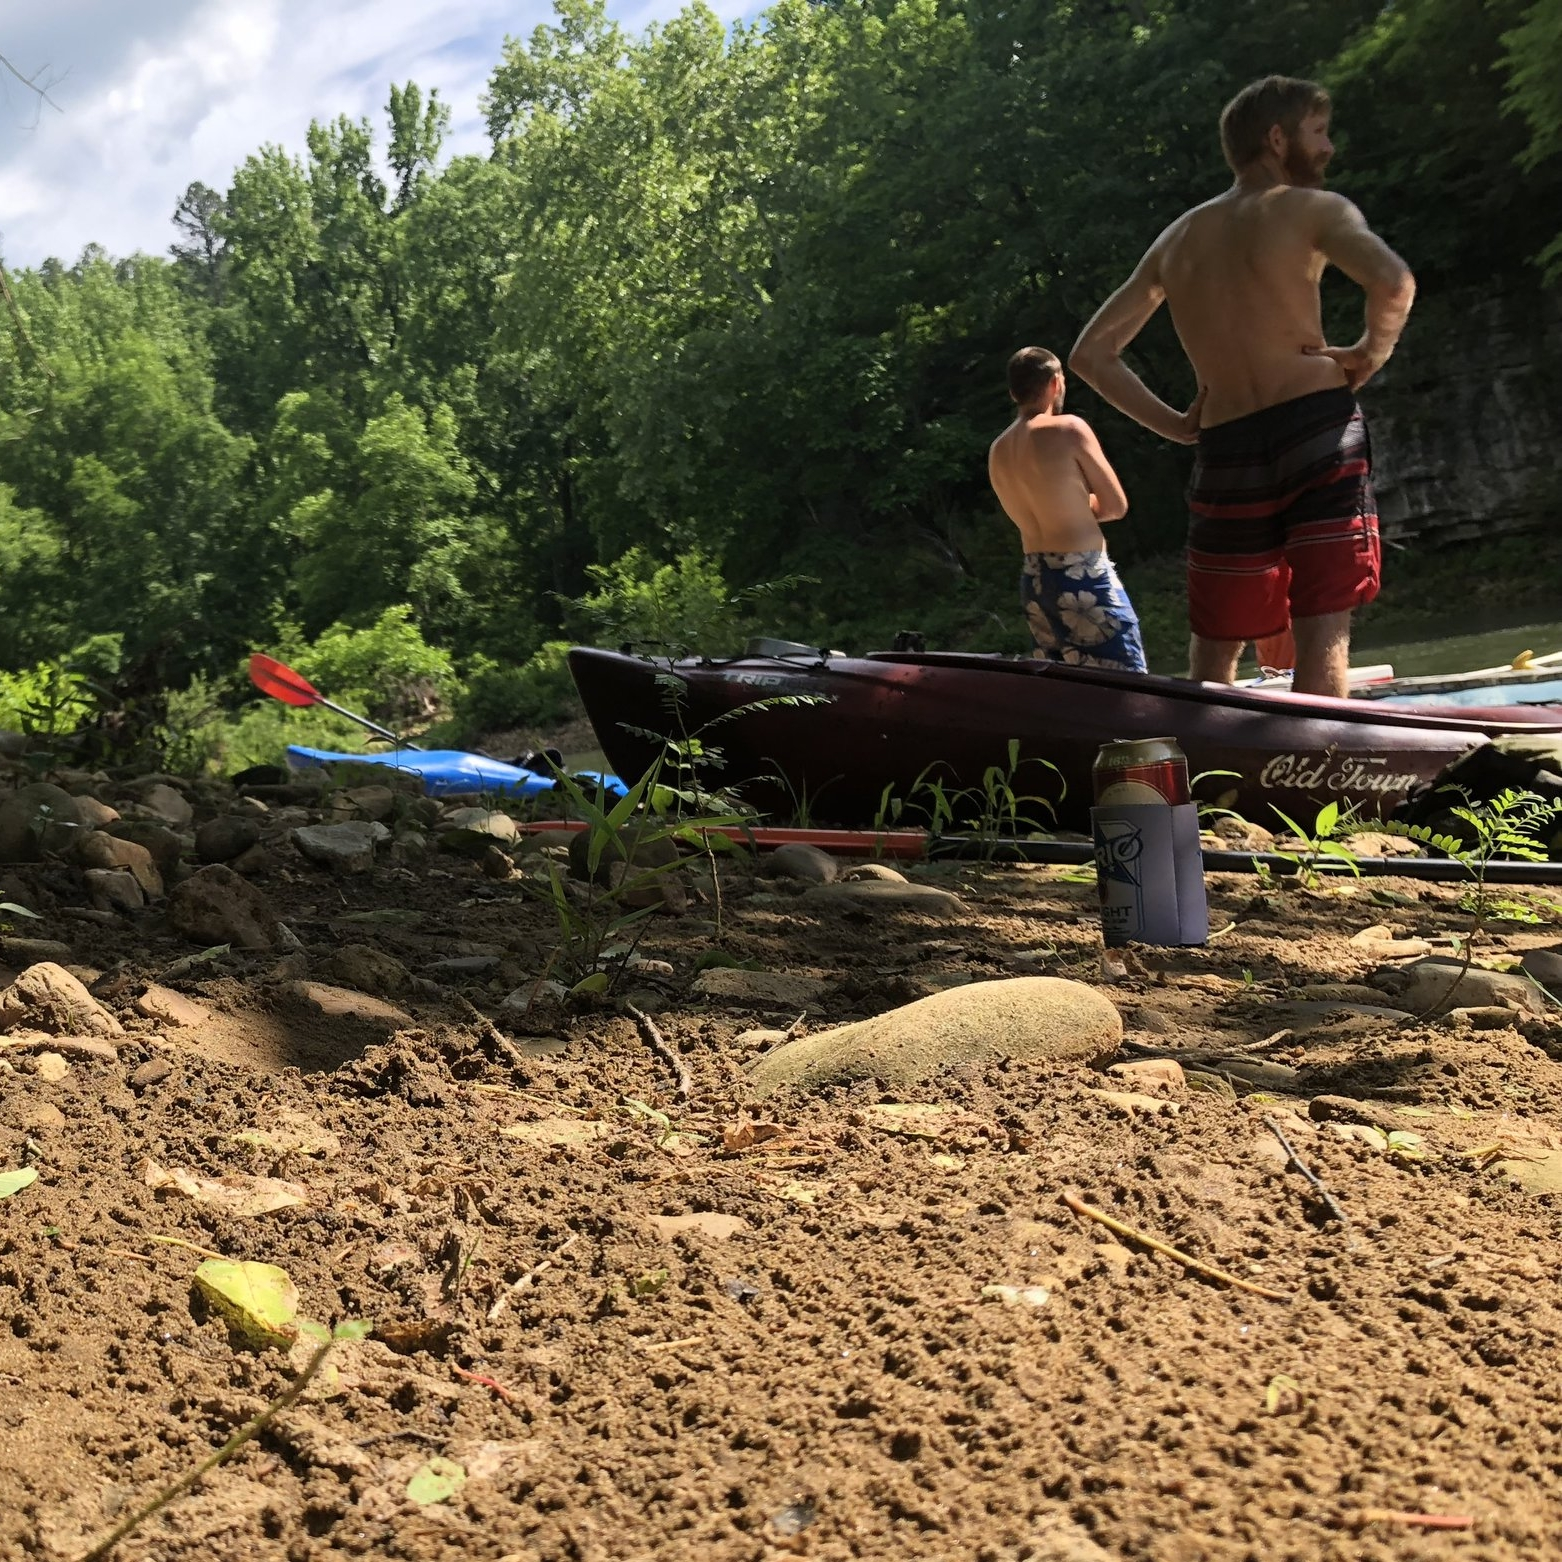 Richard Vaerewyck and Pedro Ardapple pause in their exploration of the Buffalo River to supervise as others in the group try each other's boats